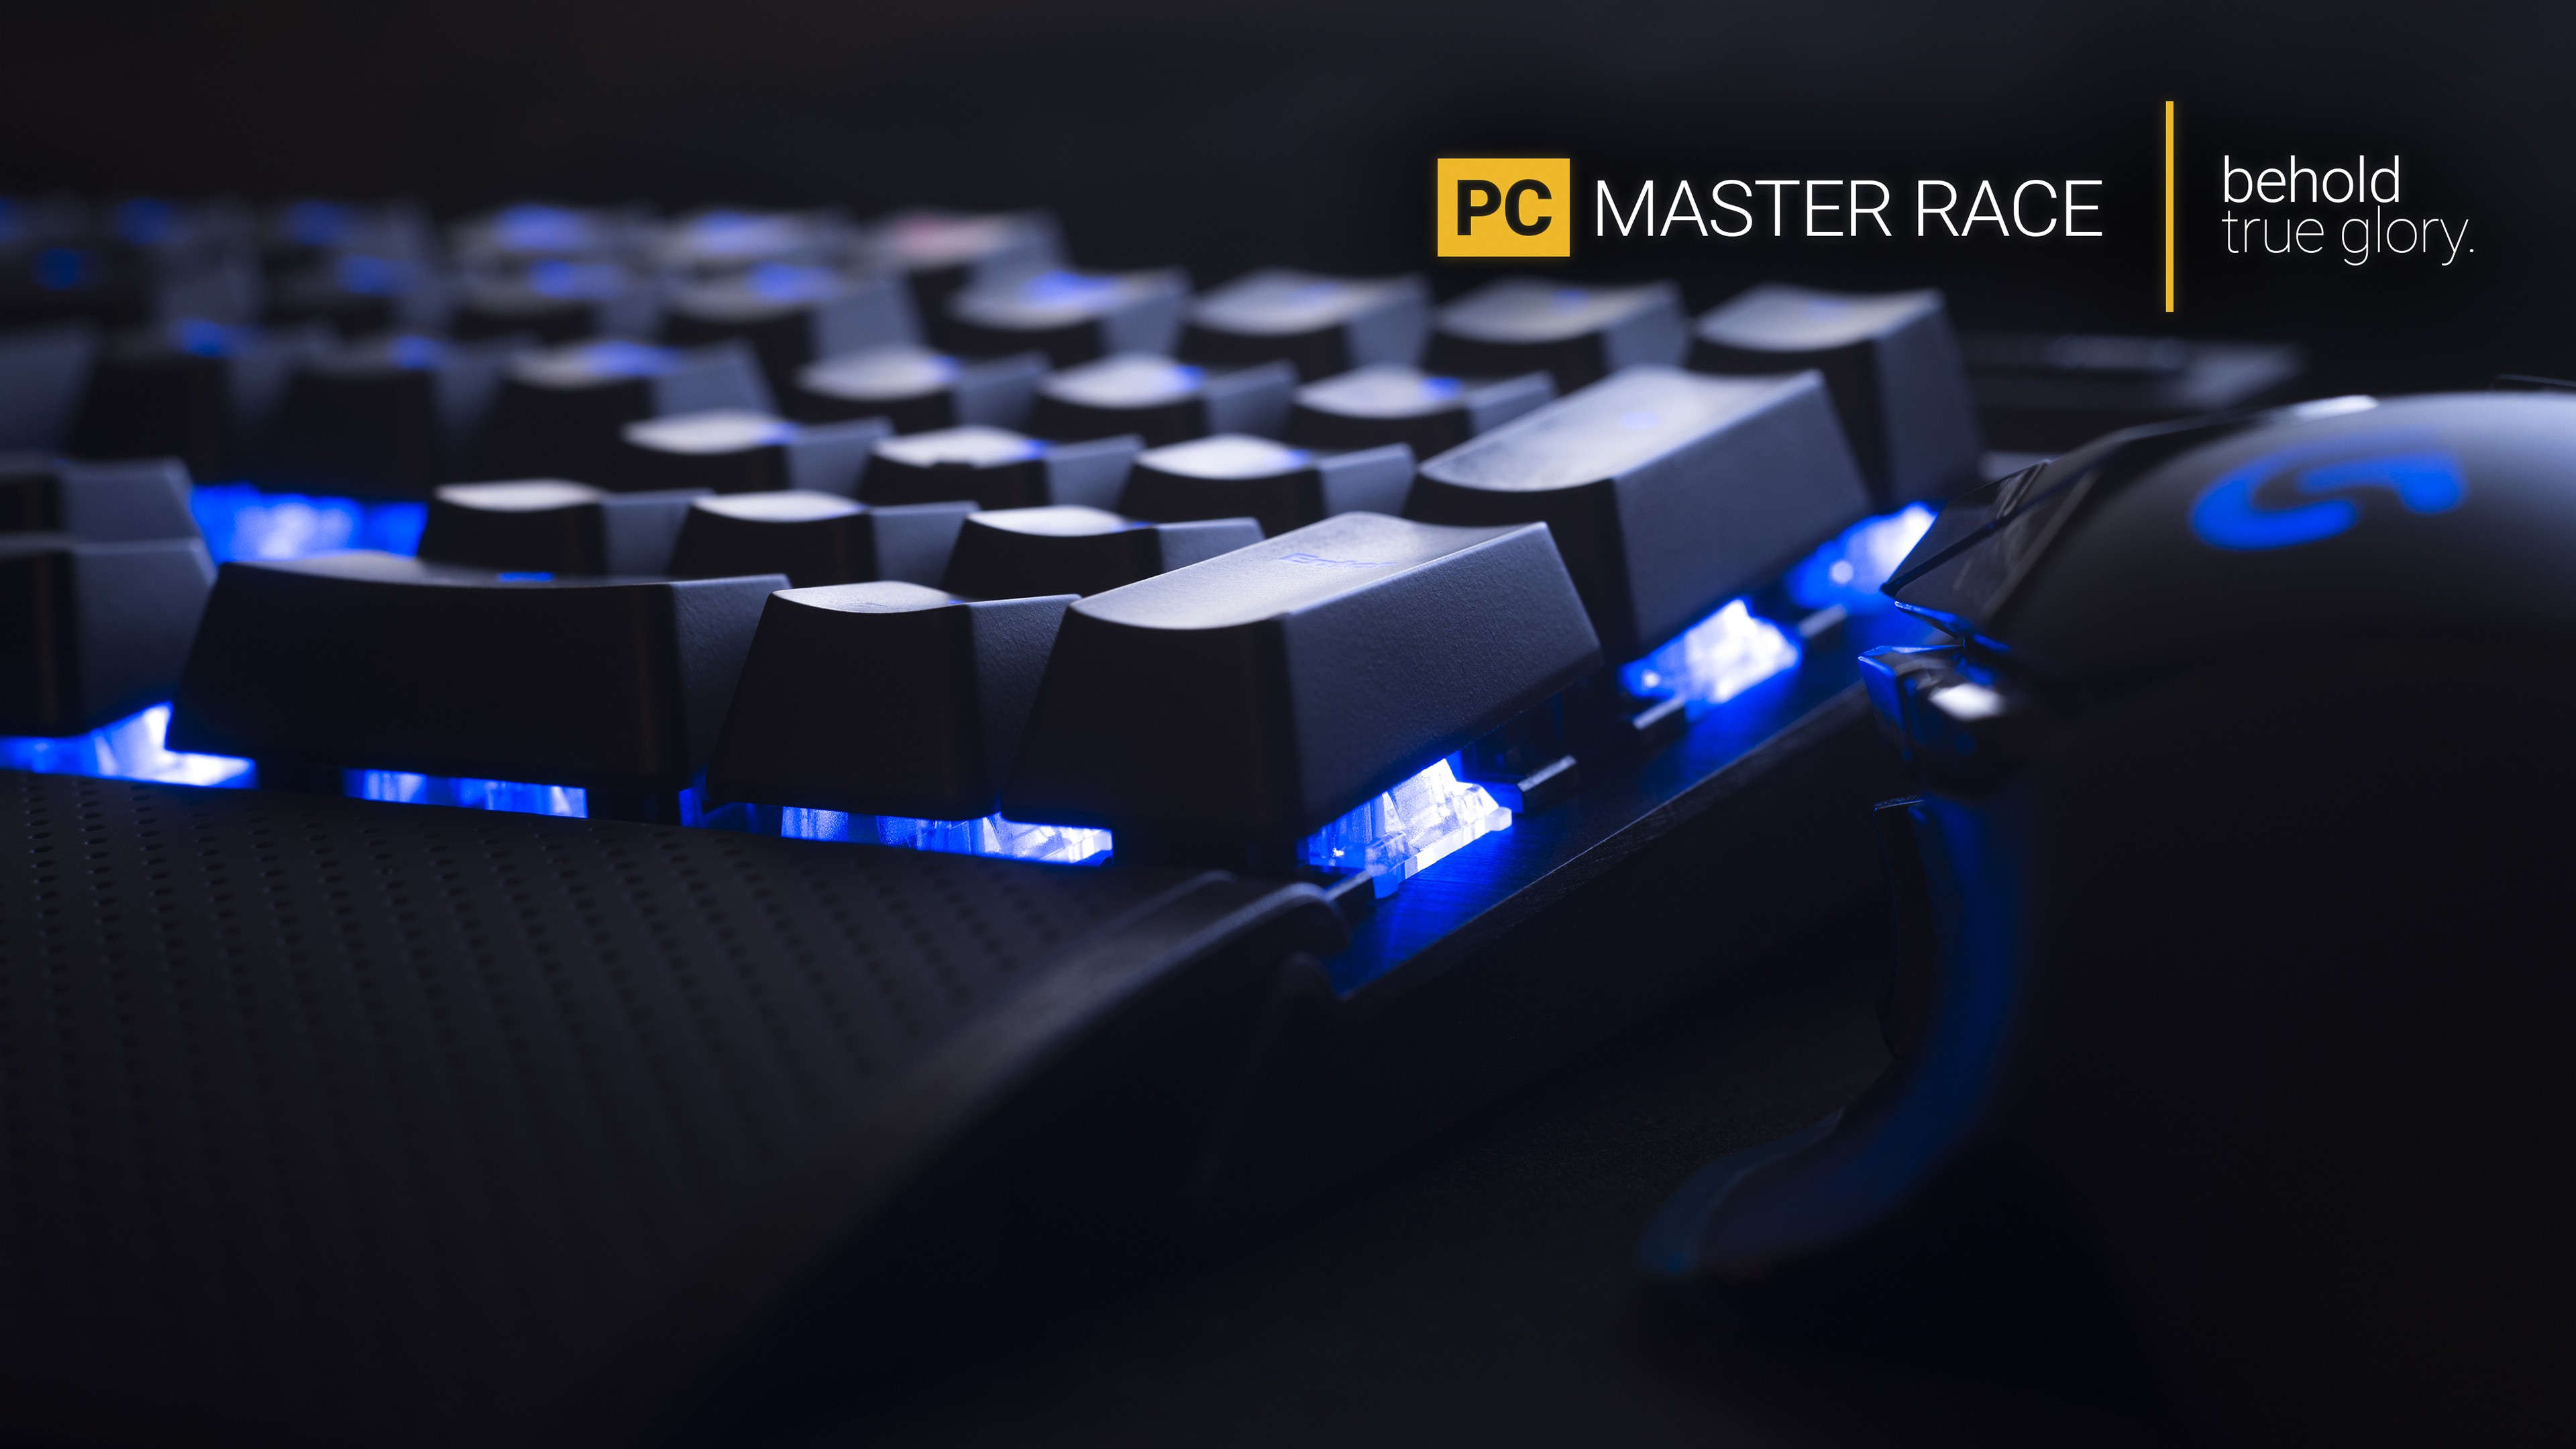 PC Gaming Hardware Keyboards Technology Computer Mice Master